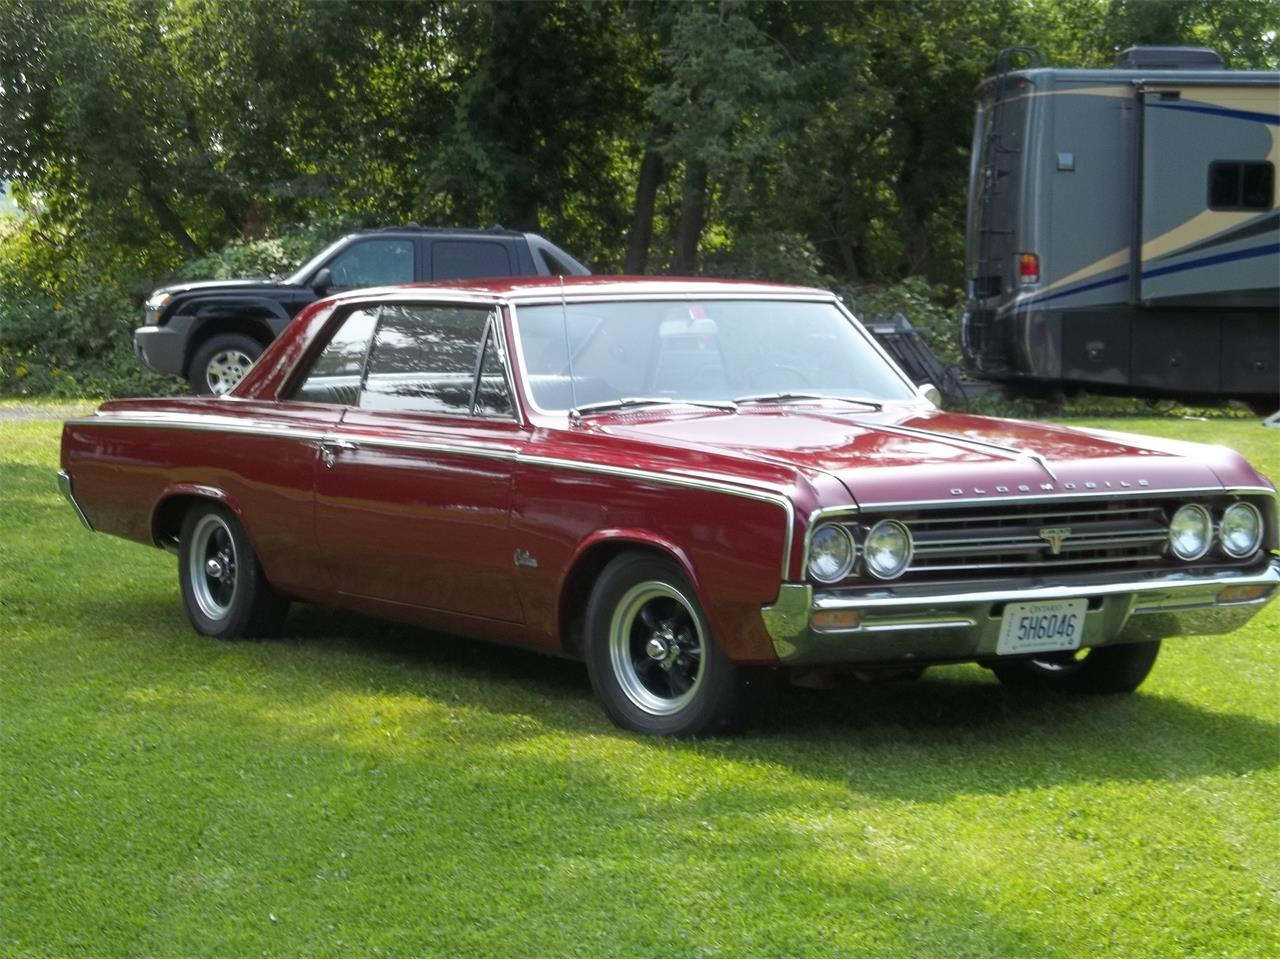 Large Picture of '64 Oldsmobile Cutlass F85 - LRFM